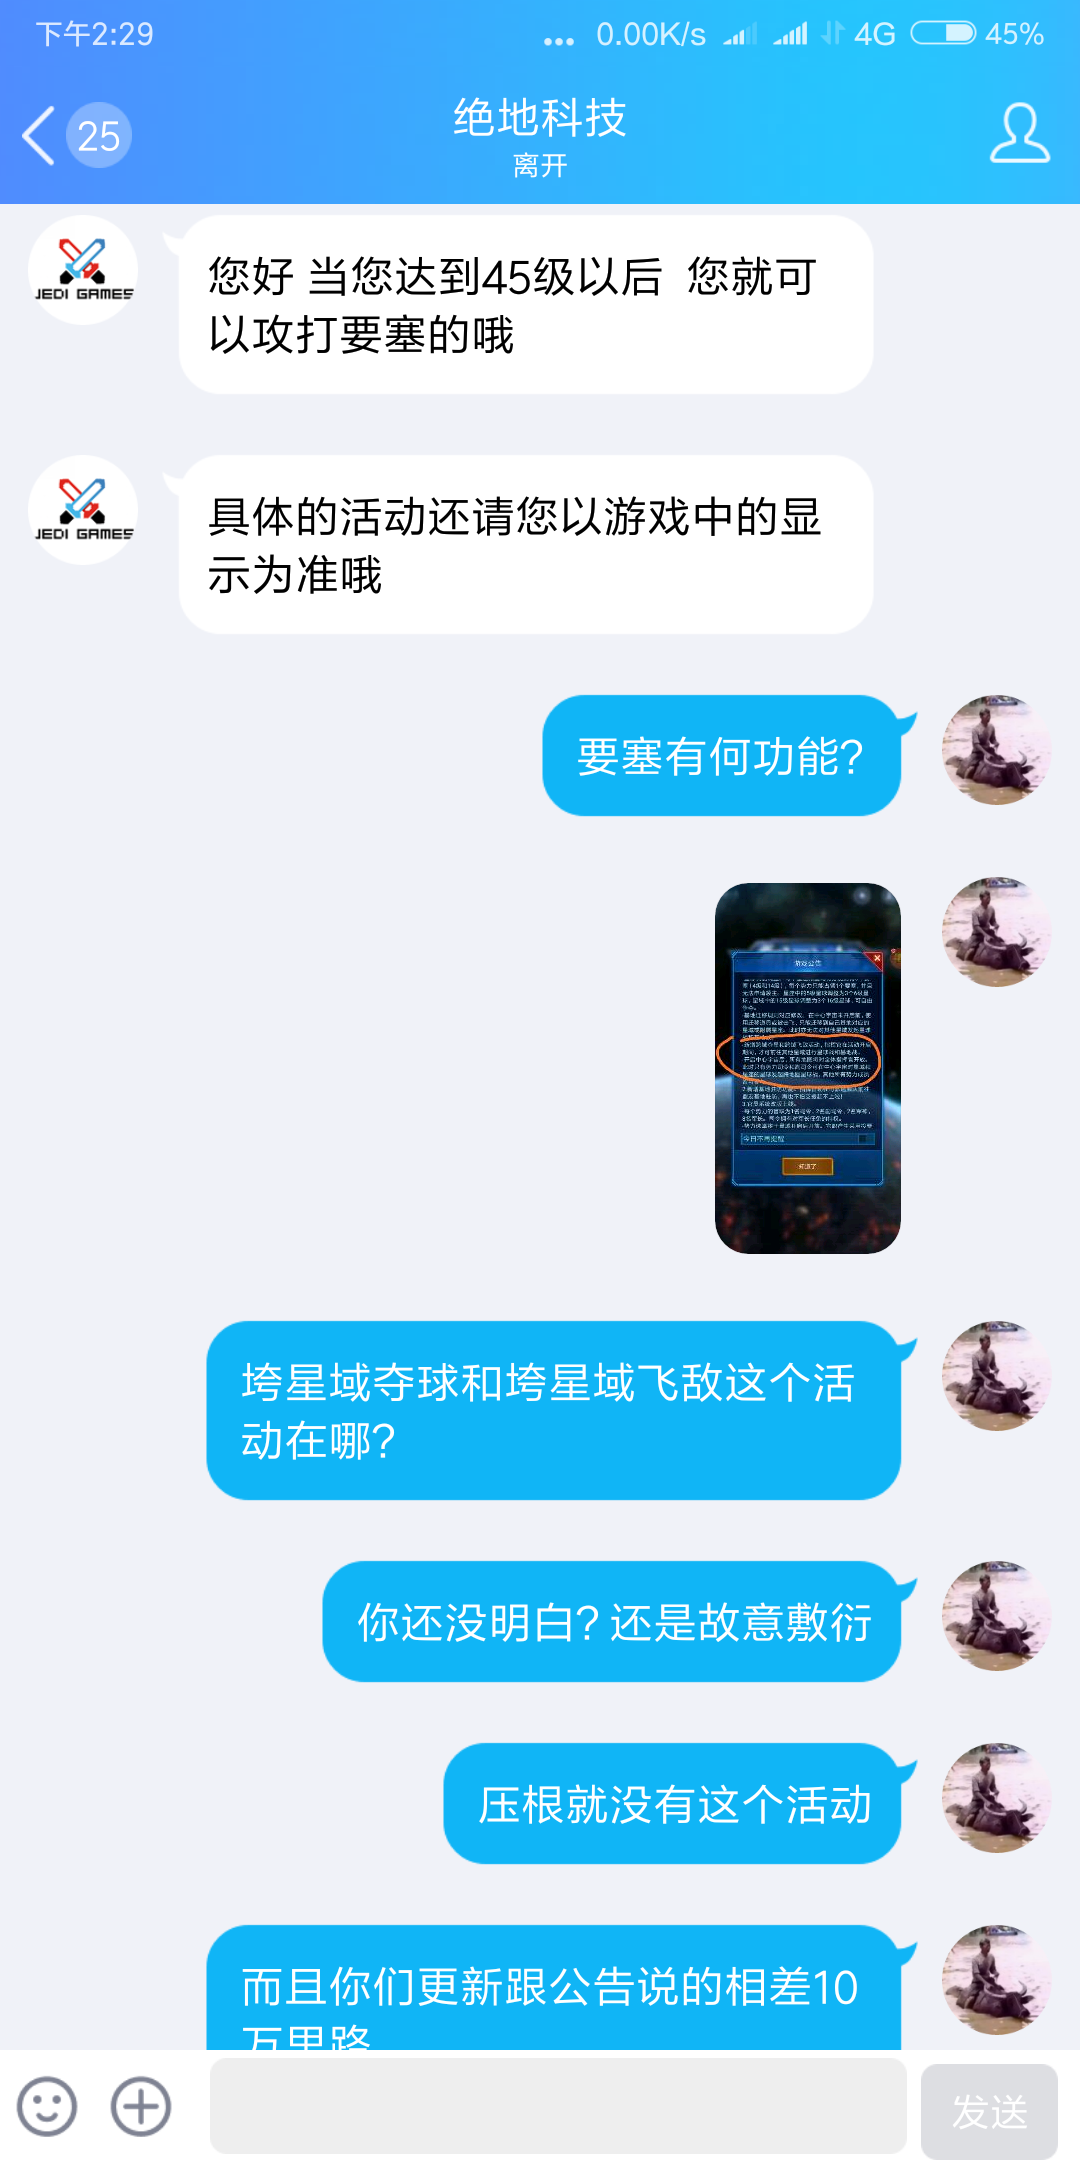 Screenshot_2018-07-27-14-29-26-631_com.tencent.mobileqq.png